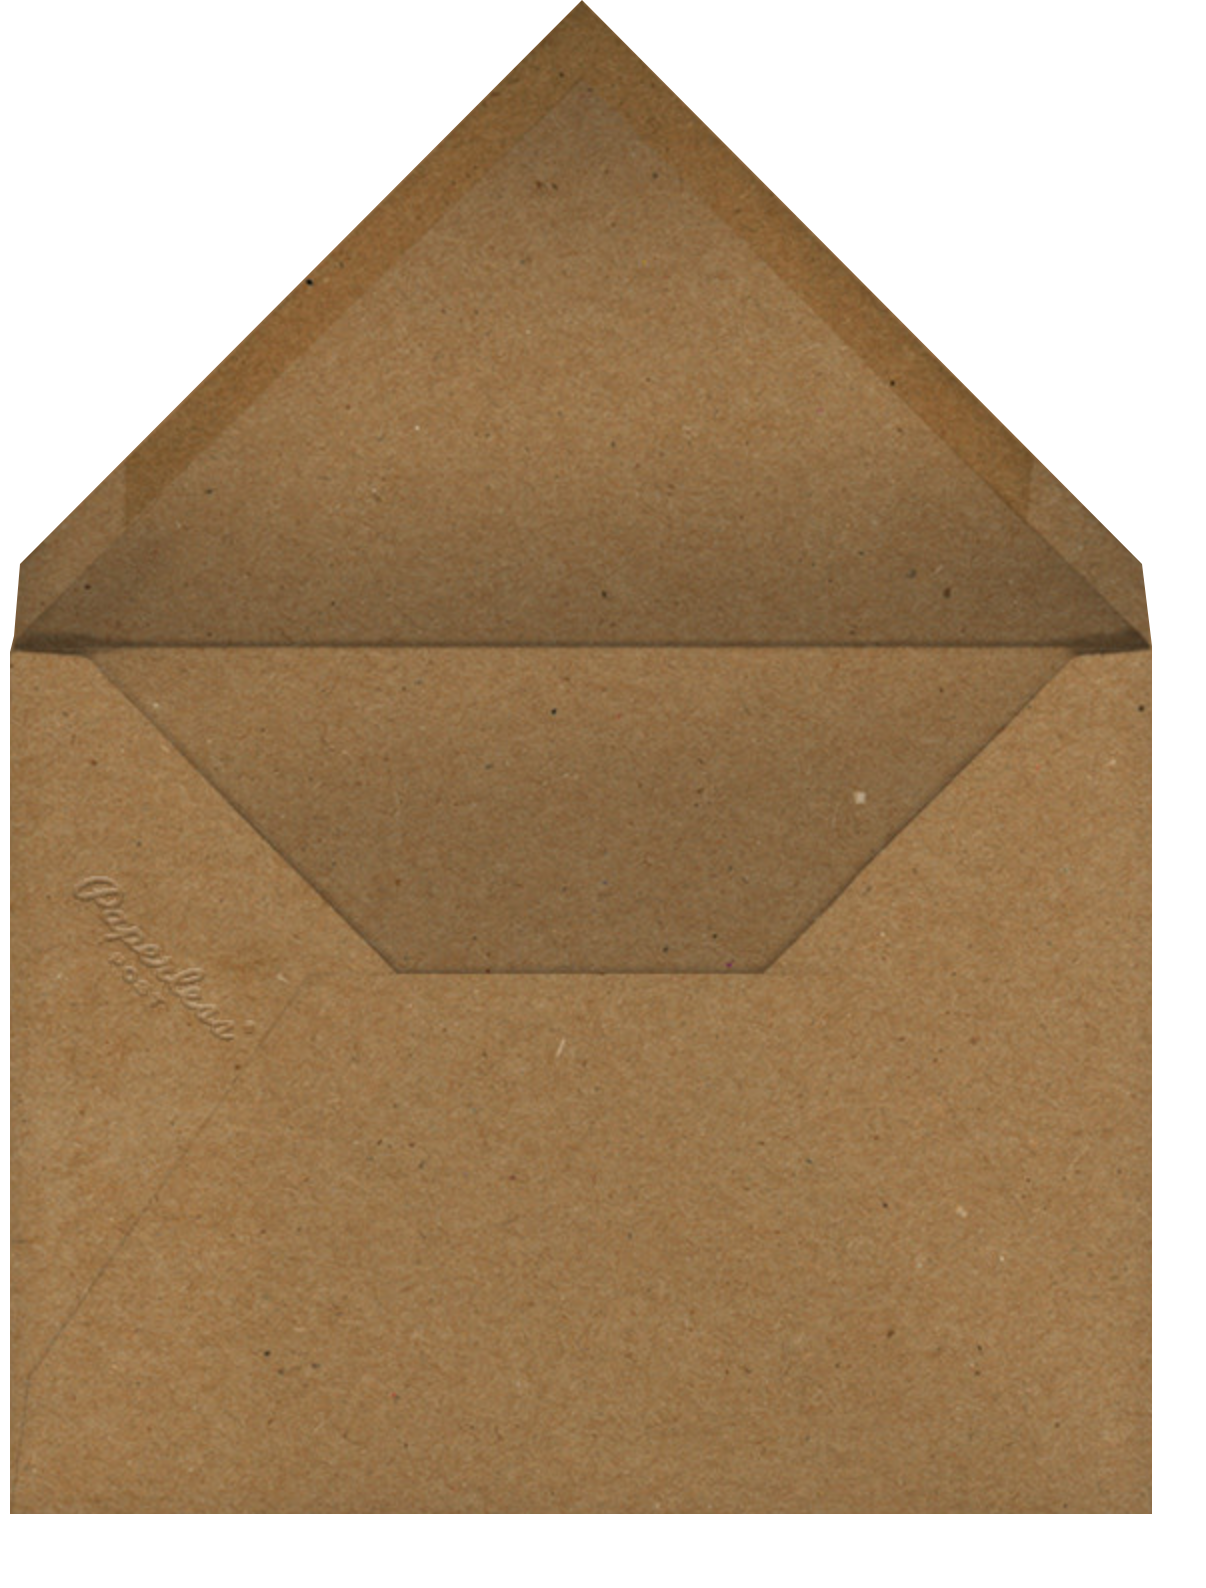 Sawtooth (Square) - Paperless Post - Graduation party - envelope back